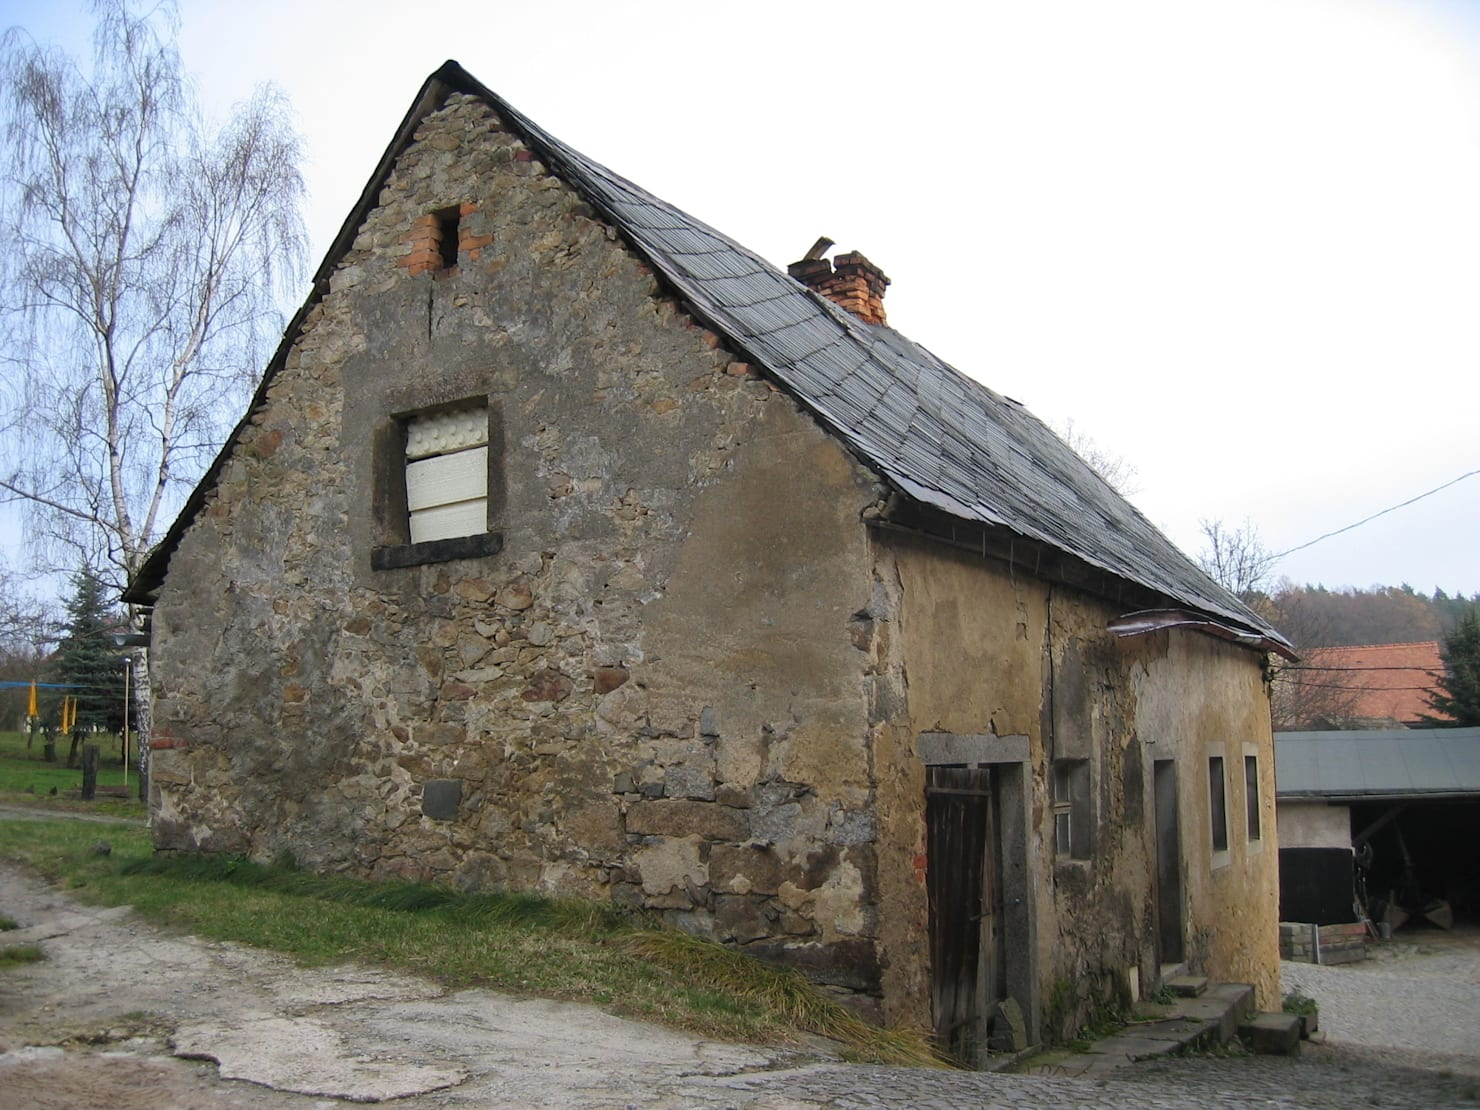 A crumbling house becomes the perfect home